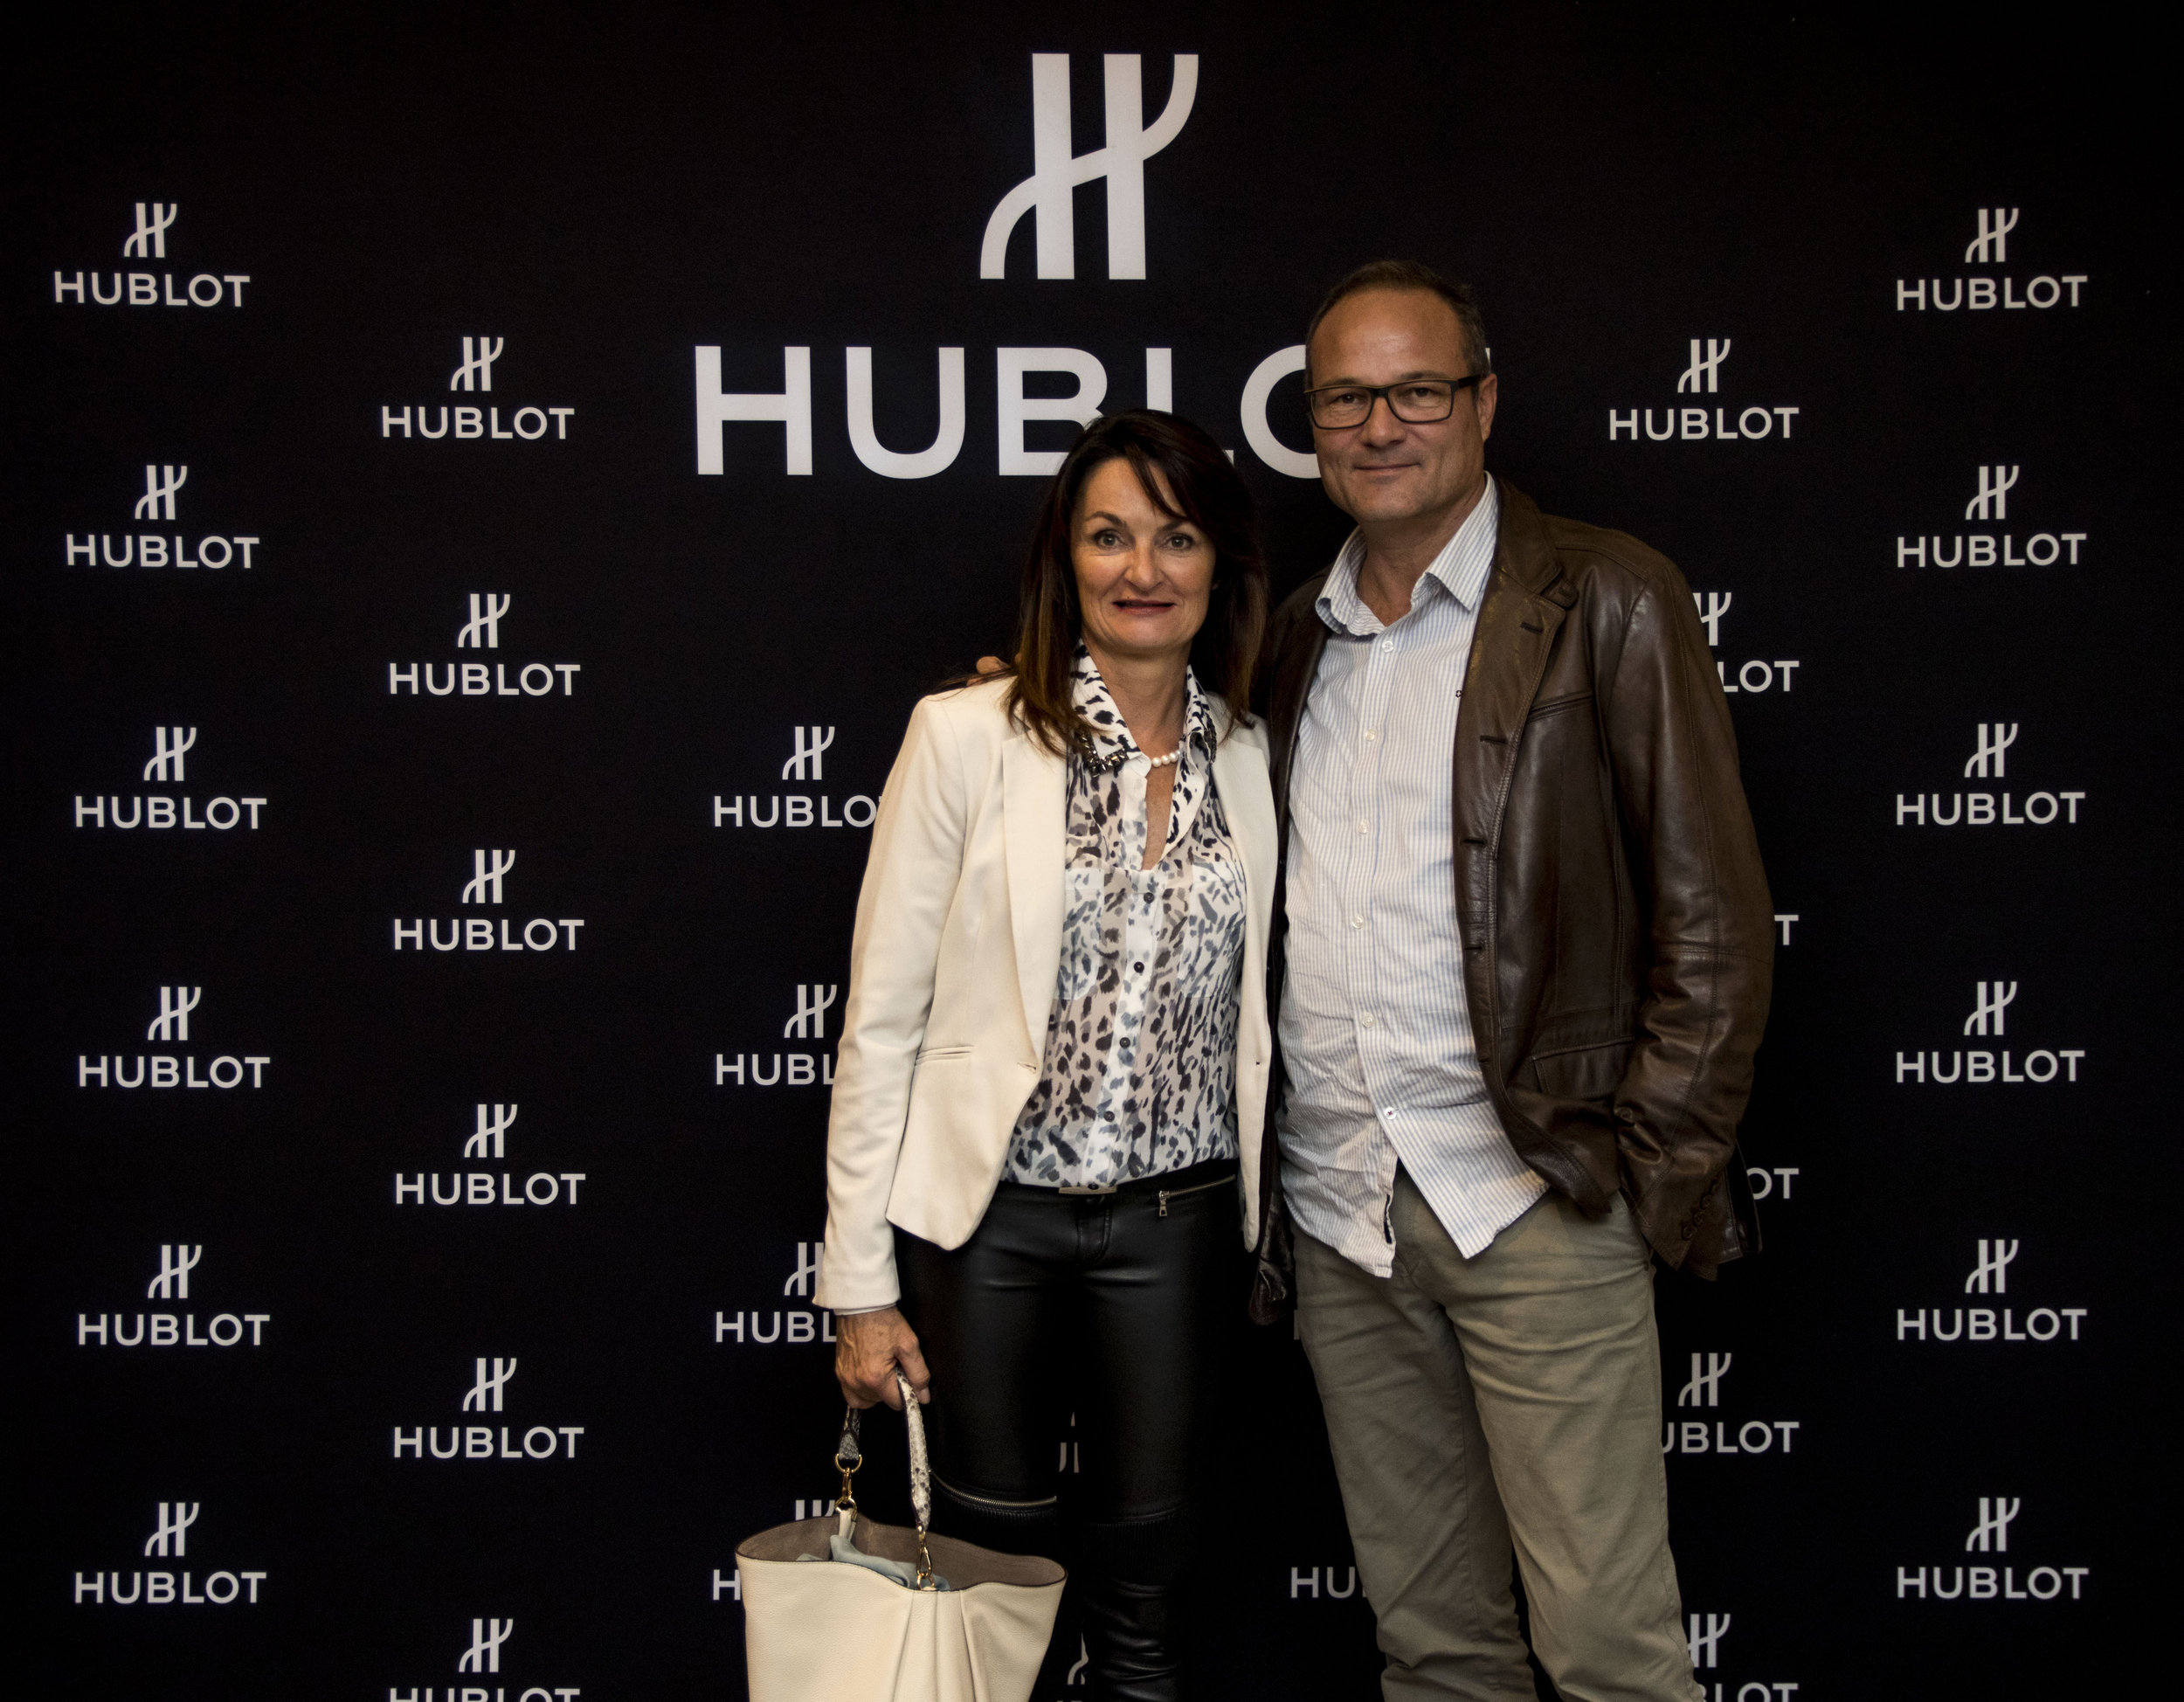 luxurygroupswitzerland_marcferrero_hublot_web045.jpg